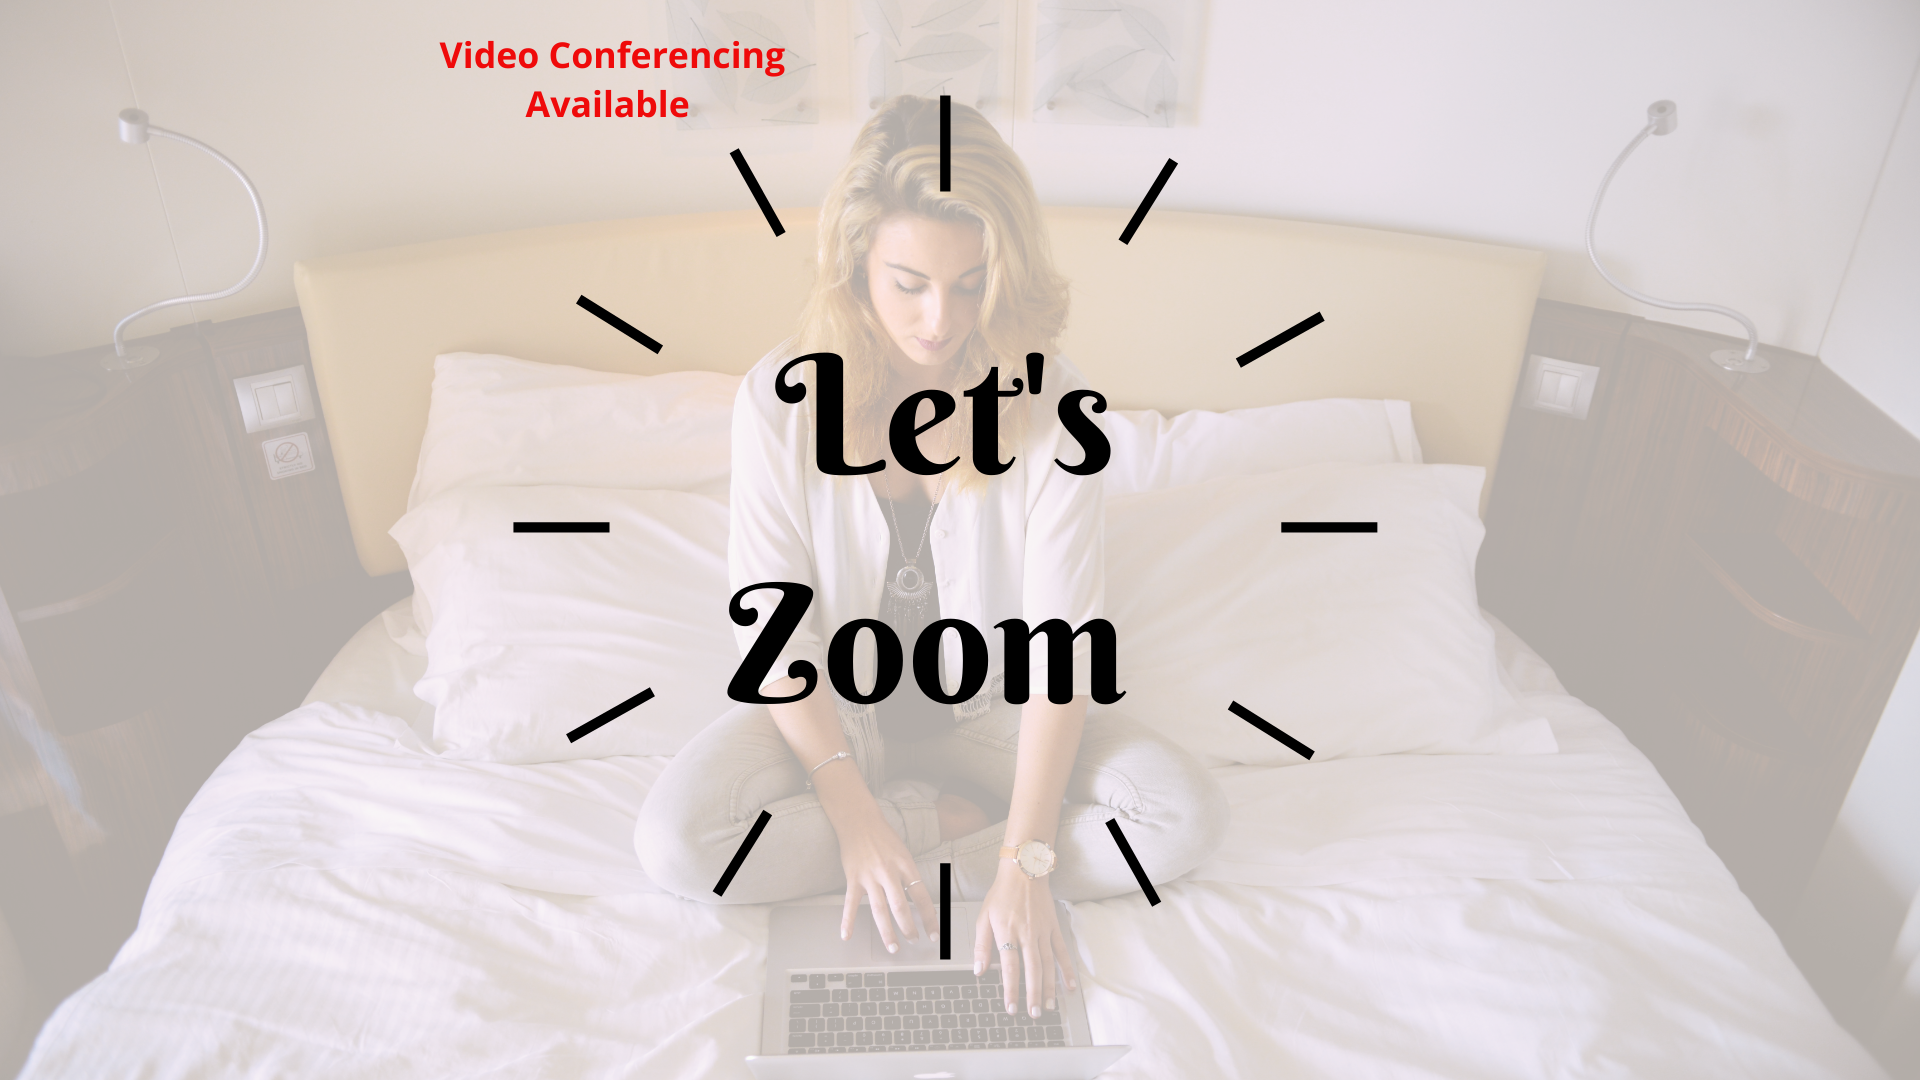 Let's Zoom Video Conferencing